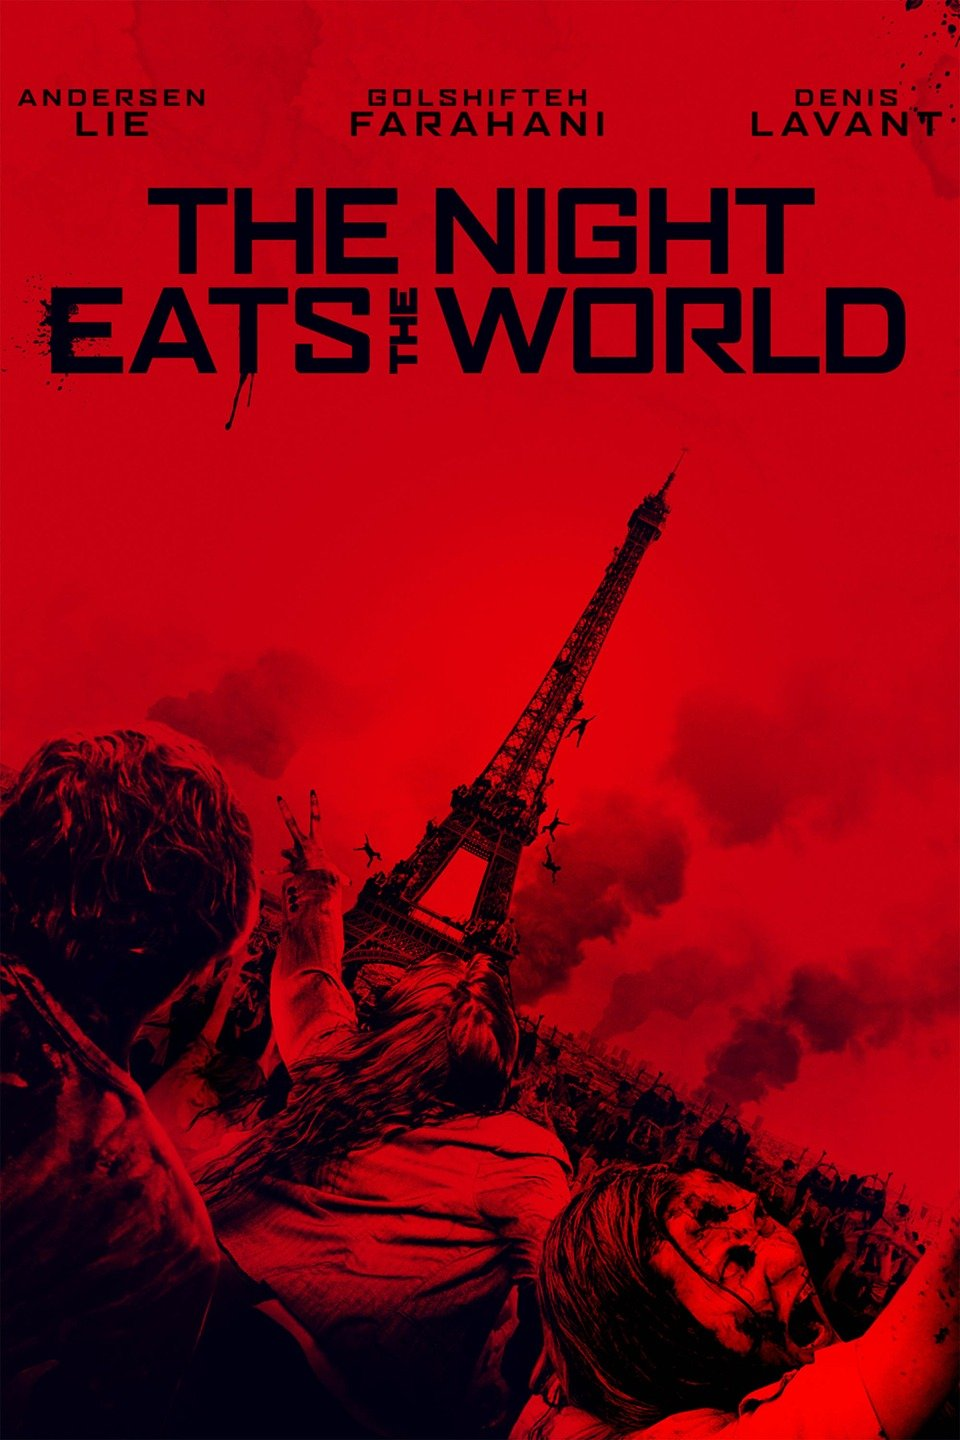 Movie poster for The Night Eats the World in black and red with horde of zombies clustered near Eiffel Tower, France, with plumes of smoke in distance.